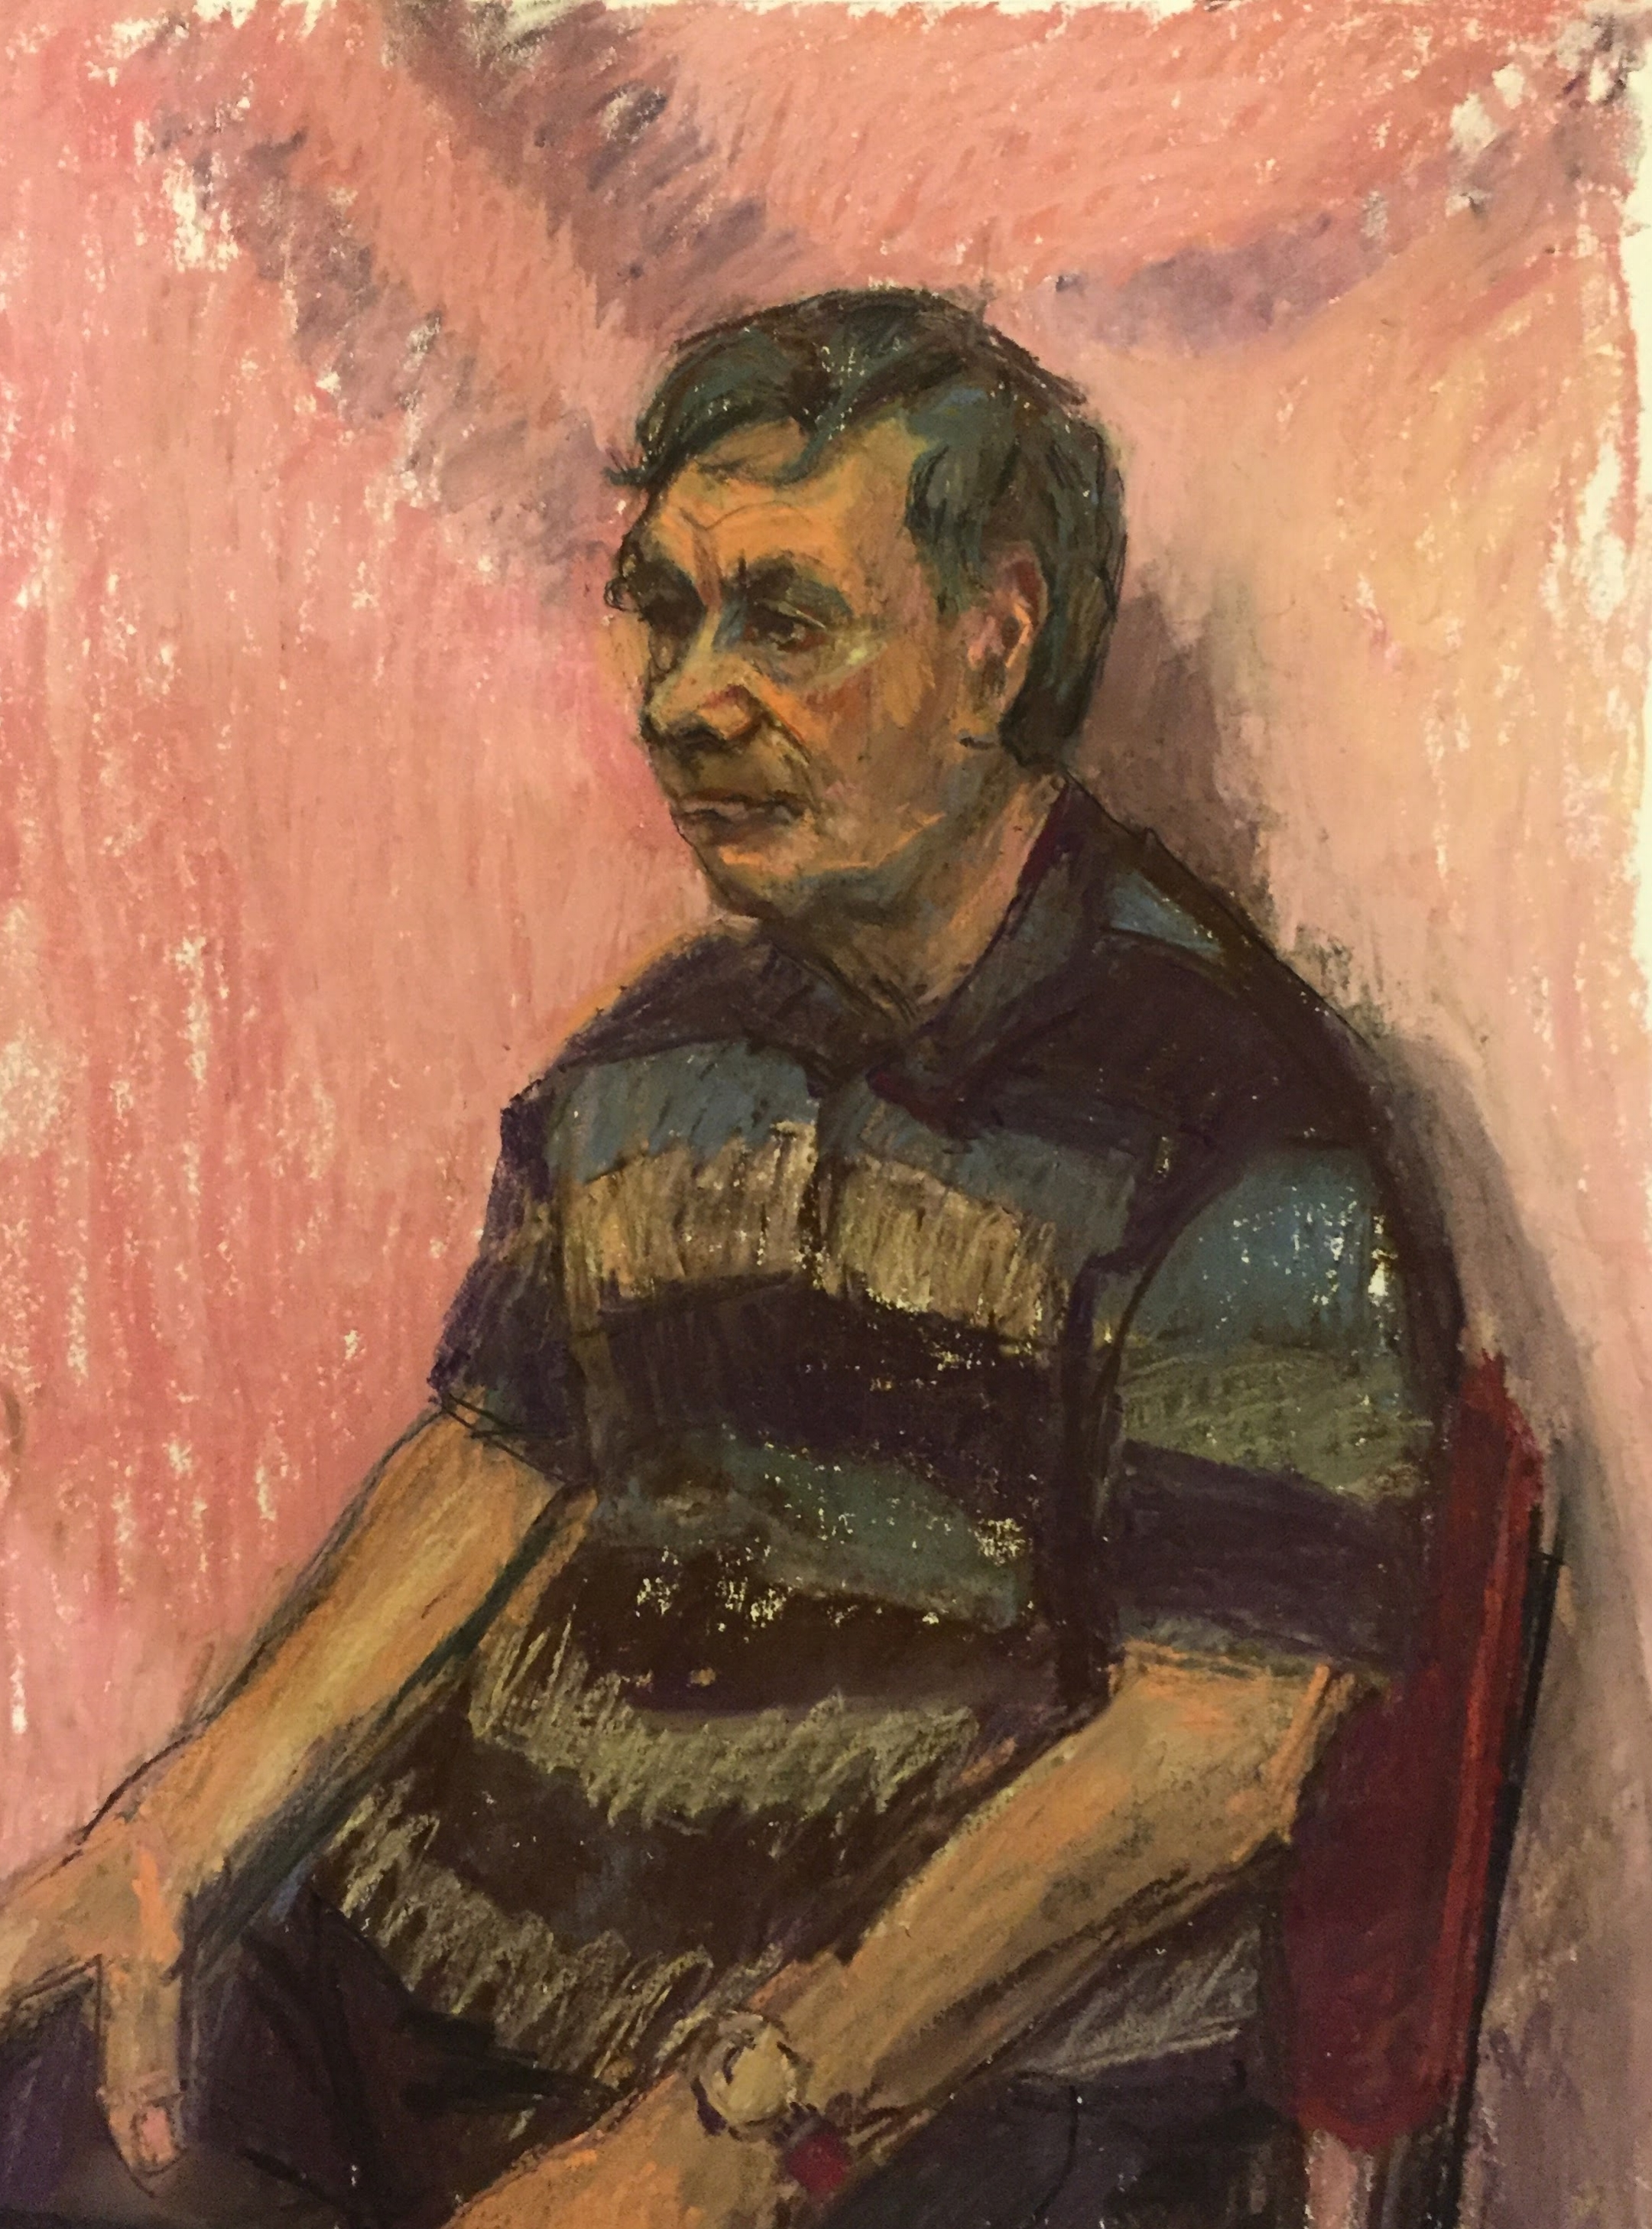 Ralph on Pink 1   Unison pastels on paper  by Sally Hyman